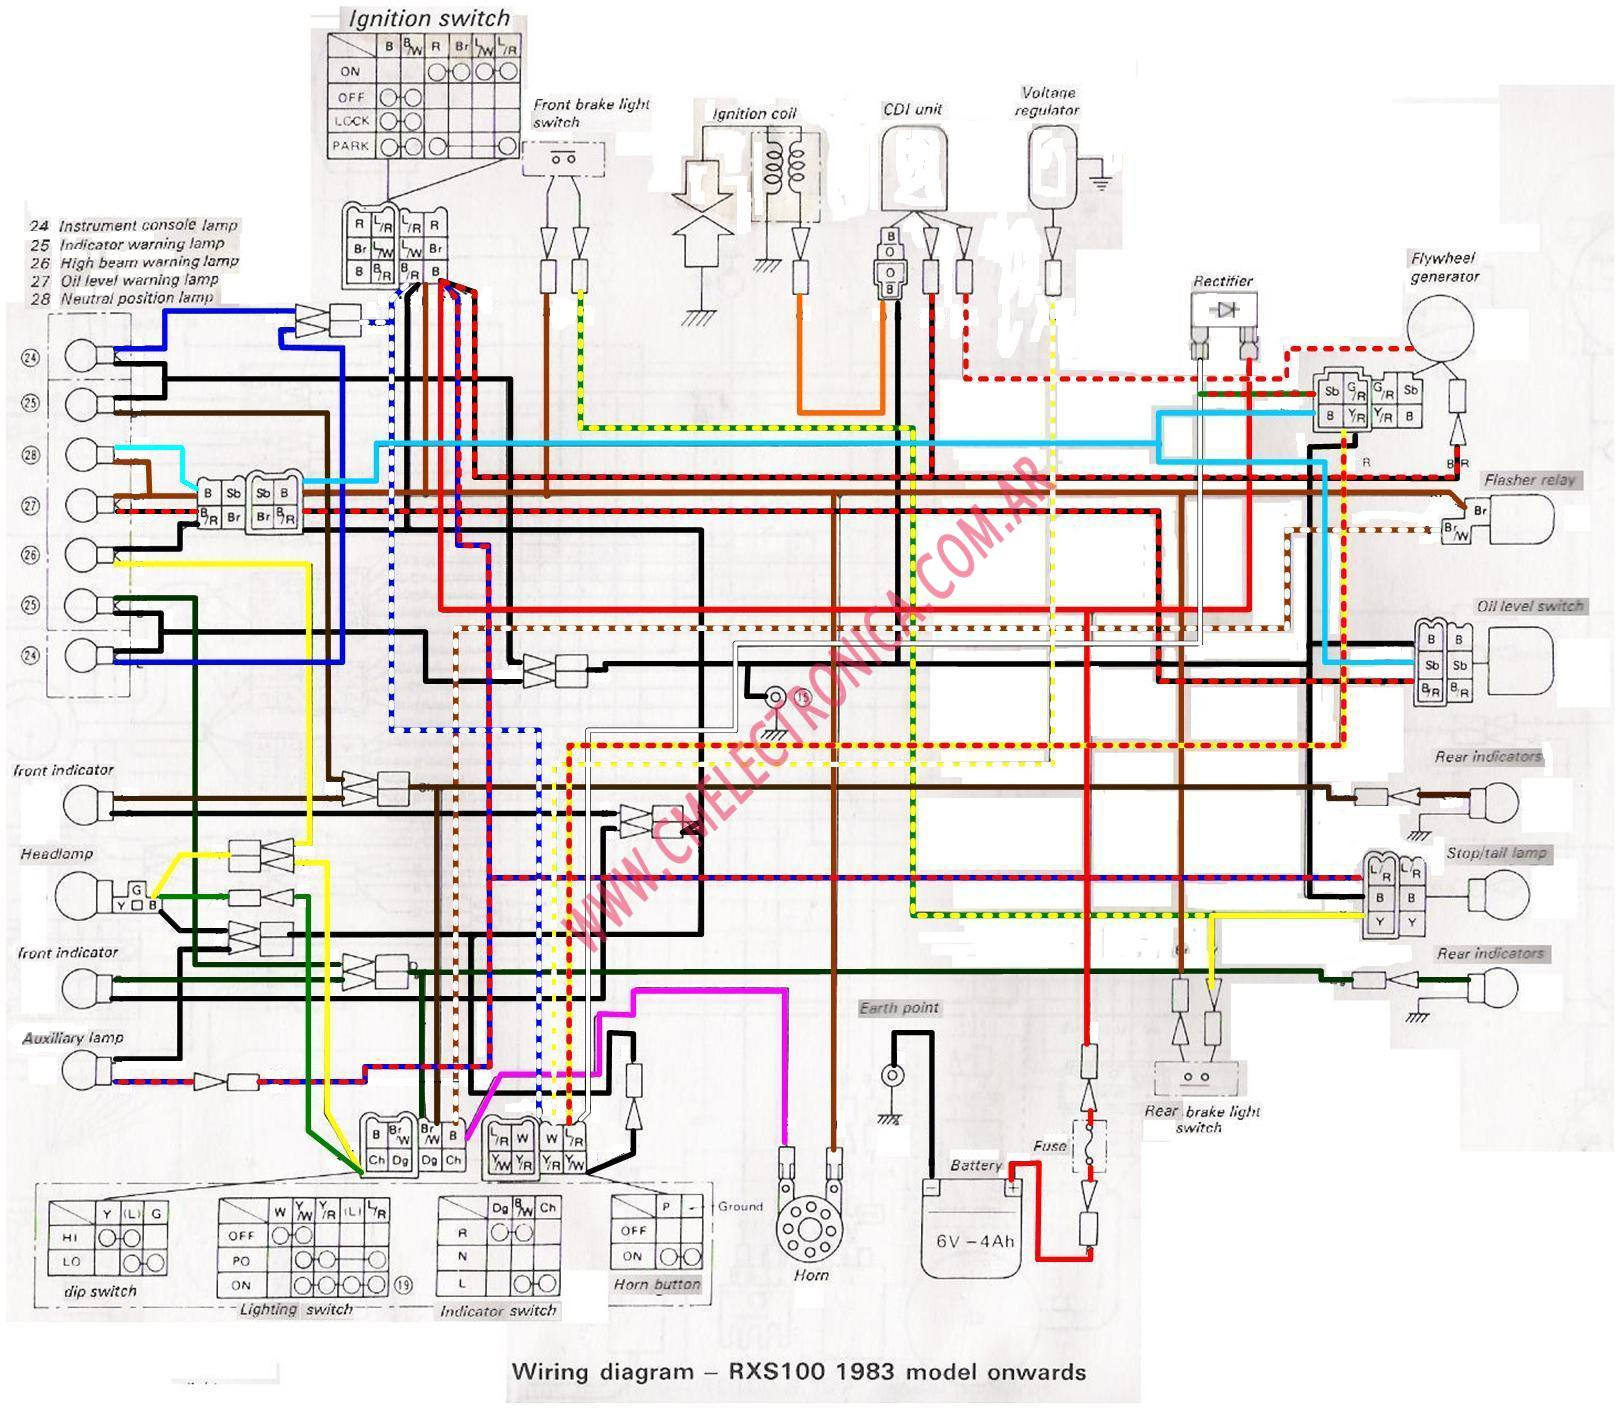 [DIAGRAM_38IU]  VA_0696] Yamaha Outboards Wiring Diagrams Free Download Wiring Diagram | Wiring Diagram For Yamaha Rx 50 |  | Timew Inrebe Mohammedshrine Librar Wiring 101